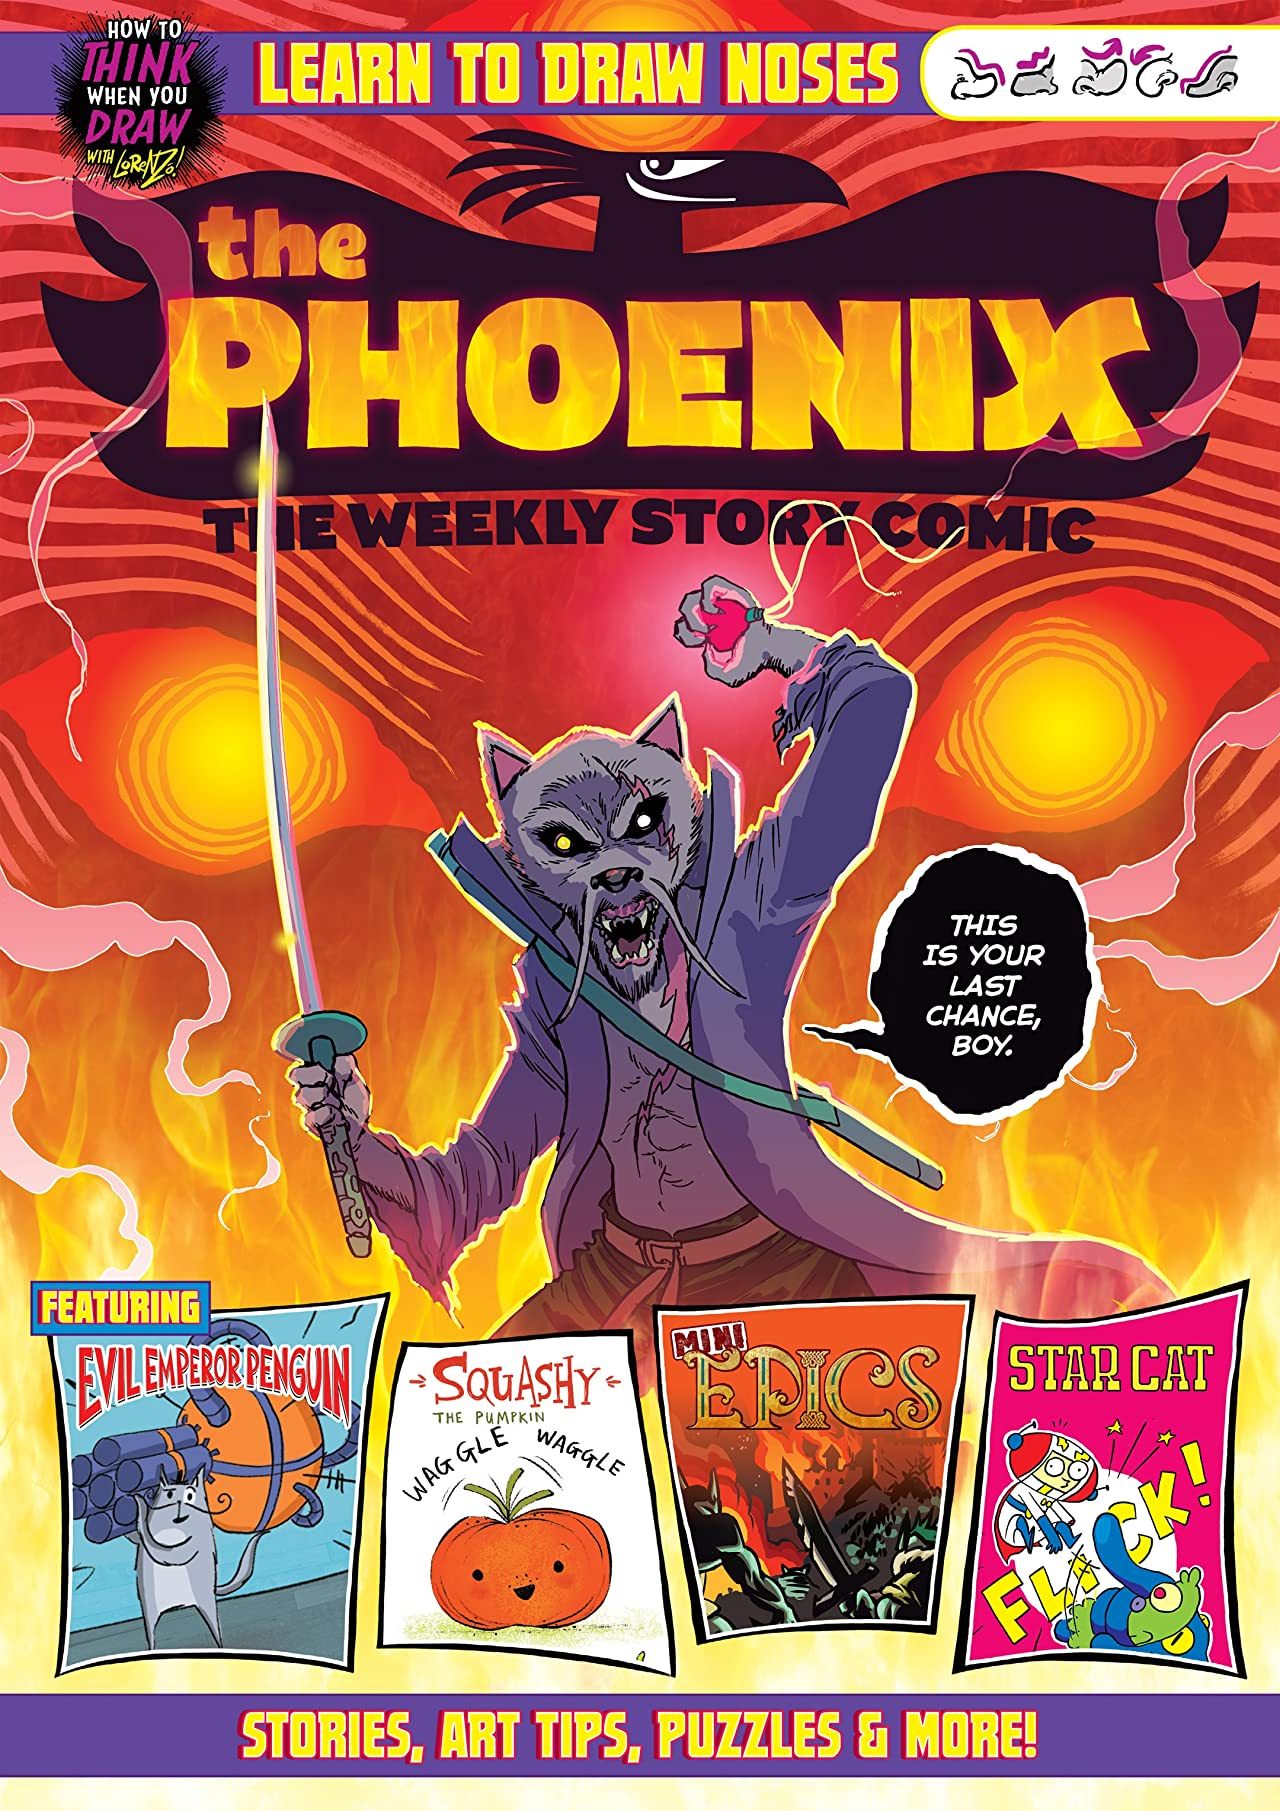 The Phoenix #303: The Weekly Story Comic